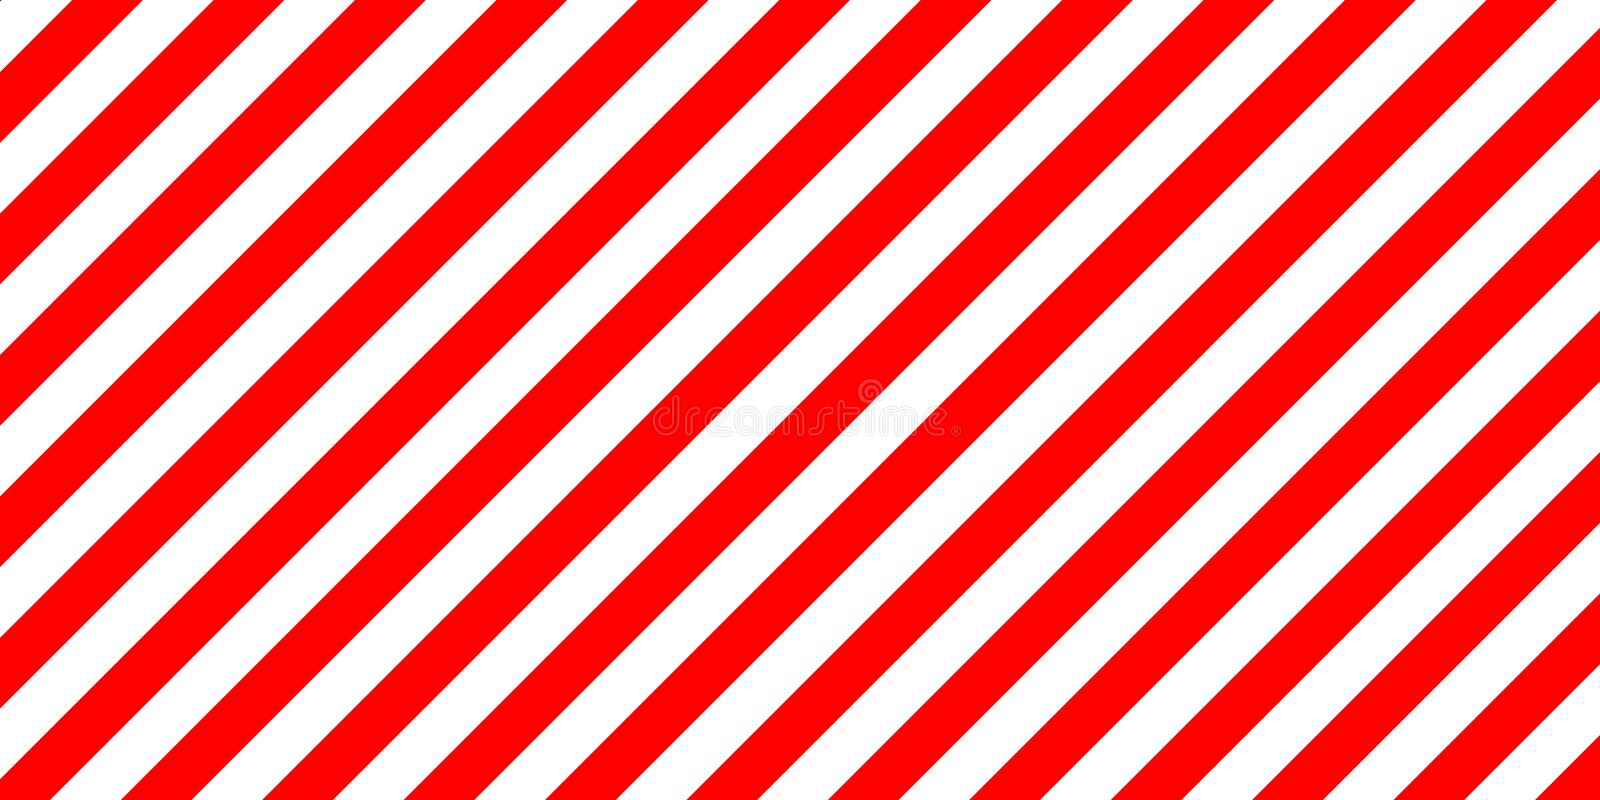 Red and white stripes diagonally sign, the size load. Warning striped rectangular background, red and white stripes diagonally sign showing the size of the load royalty free illustration